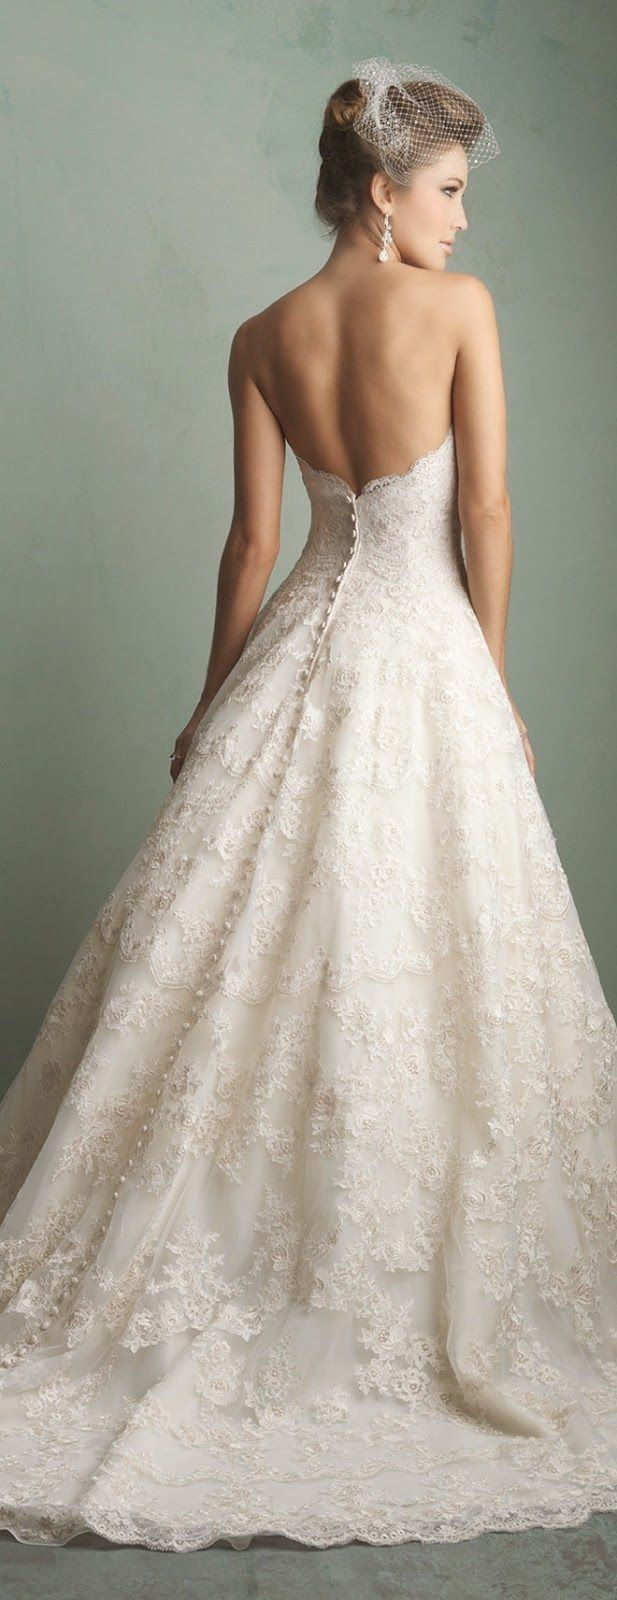 Lace keyhole back wedding dress  Strapless low back all lace gown with buttons to the bottoms